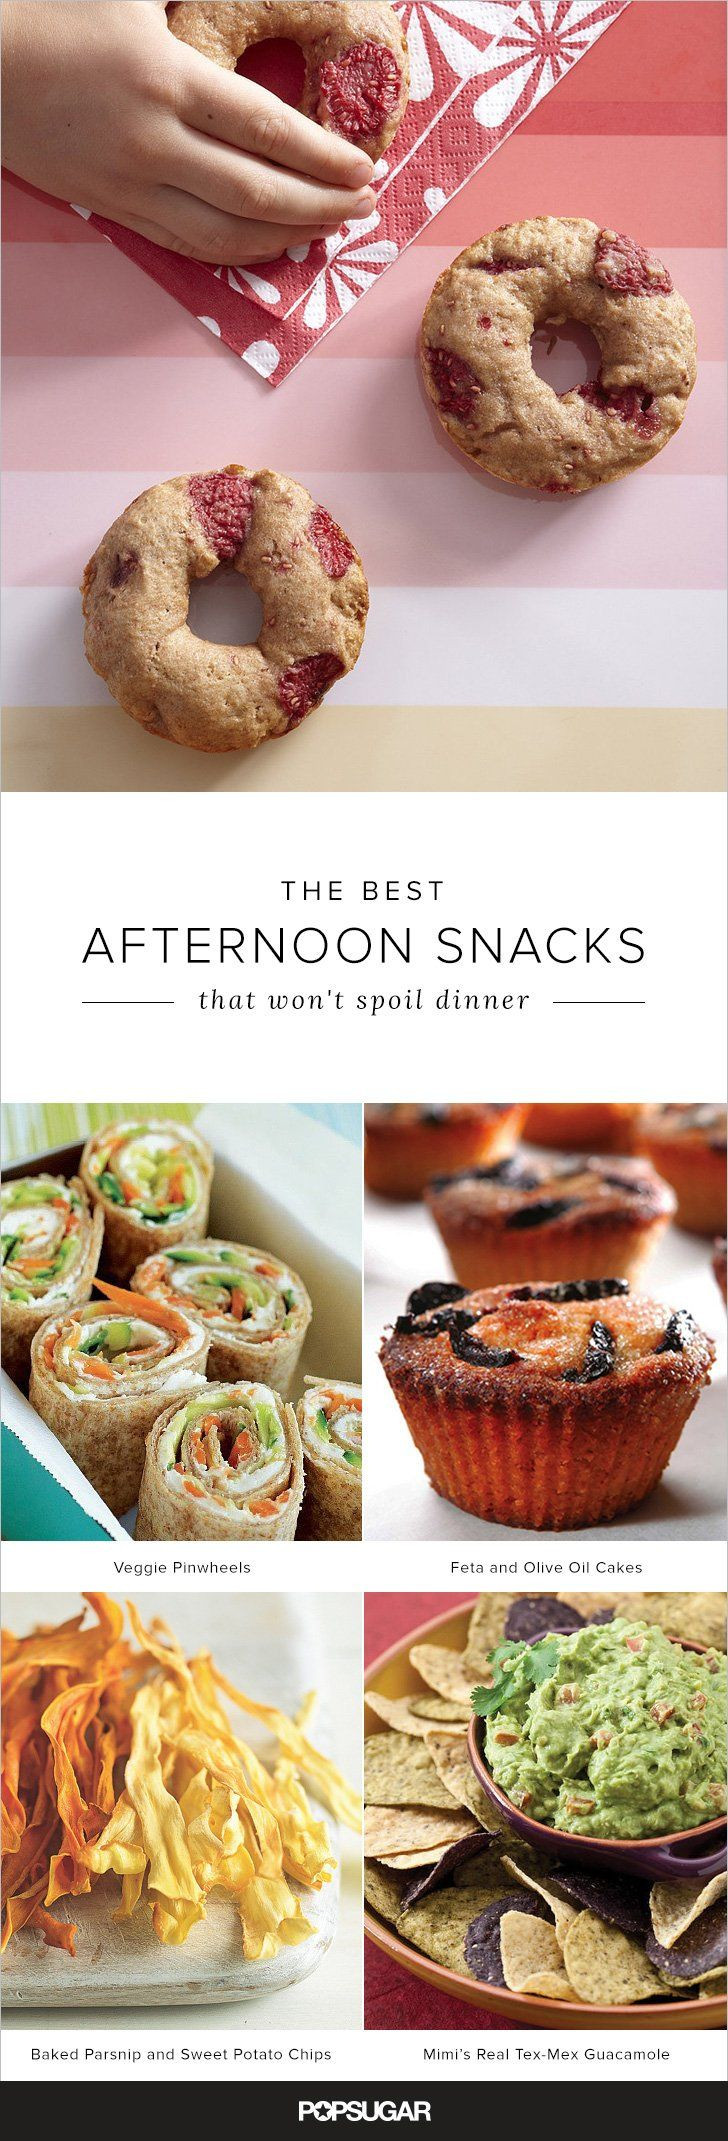 Healthy After Dinner Snacks  20 Mouthwatering and Healthy After School Snacks That